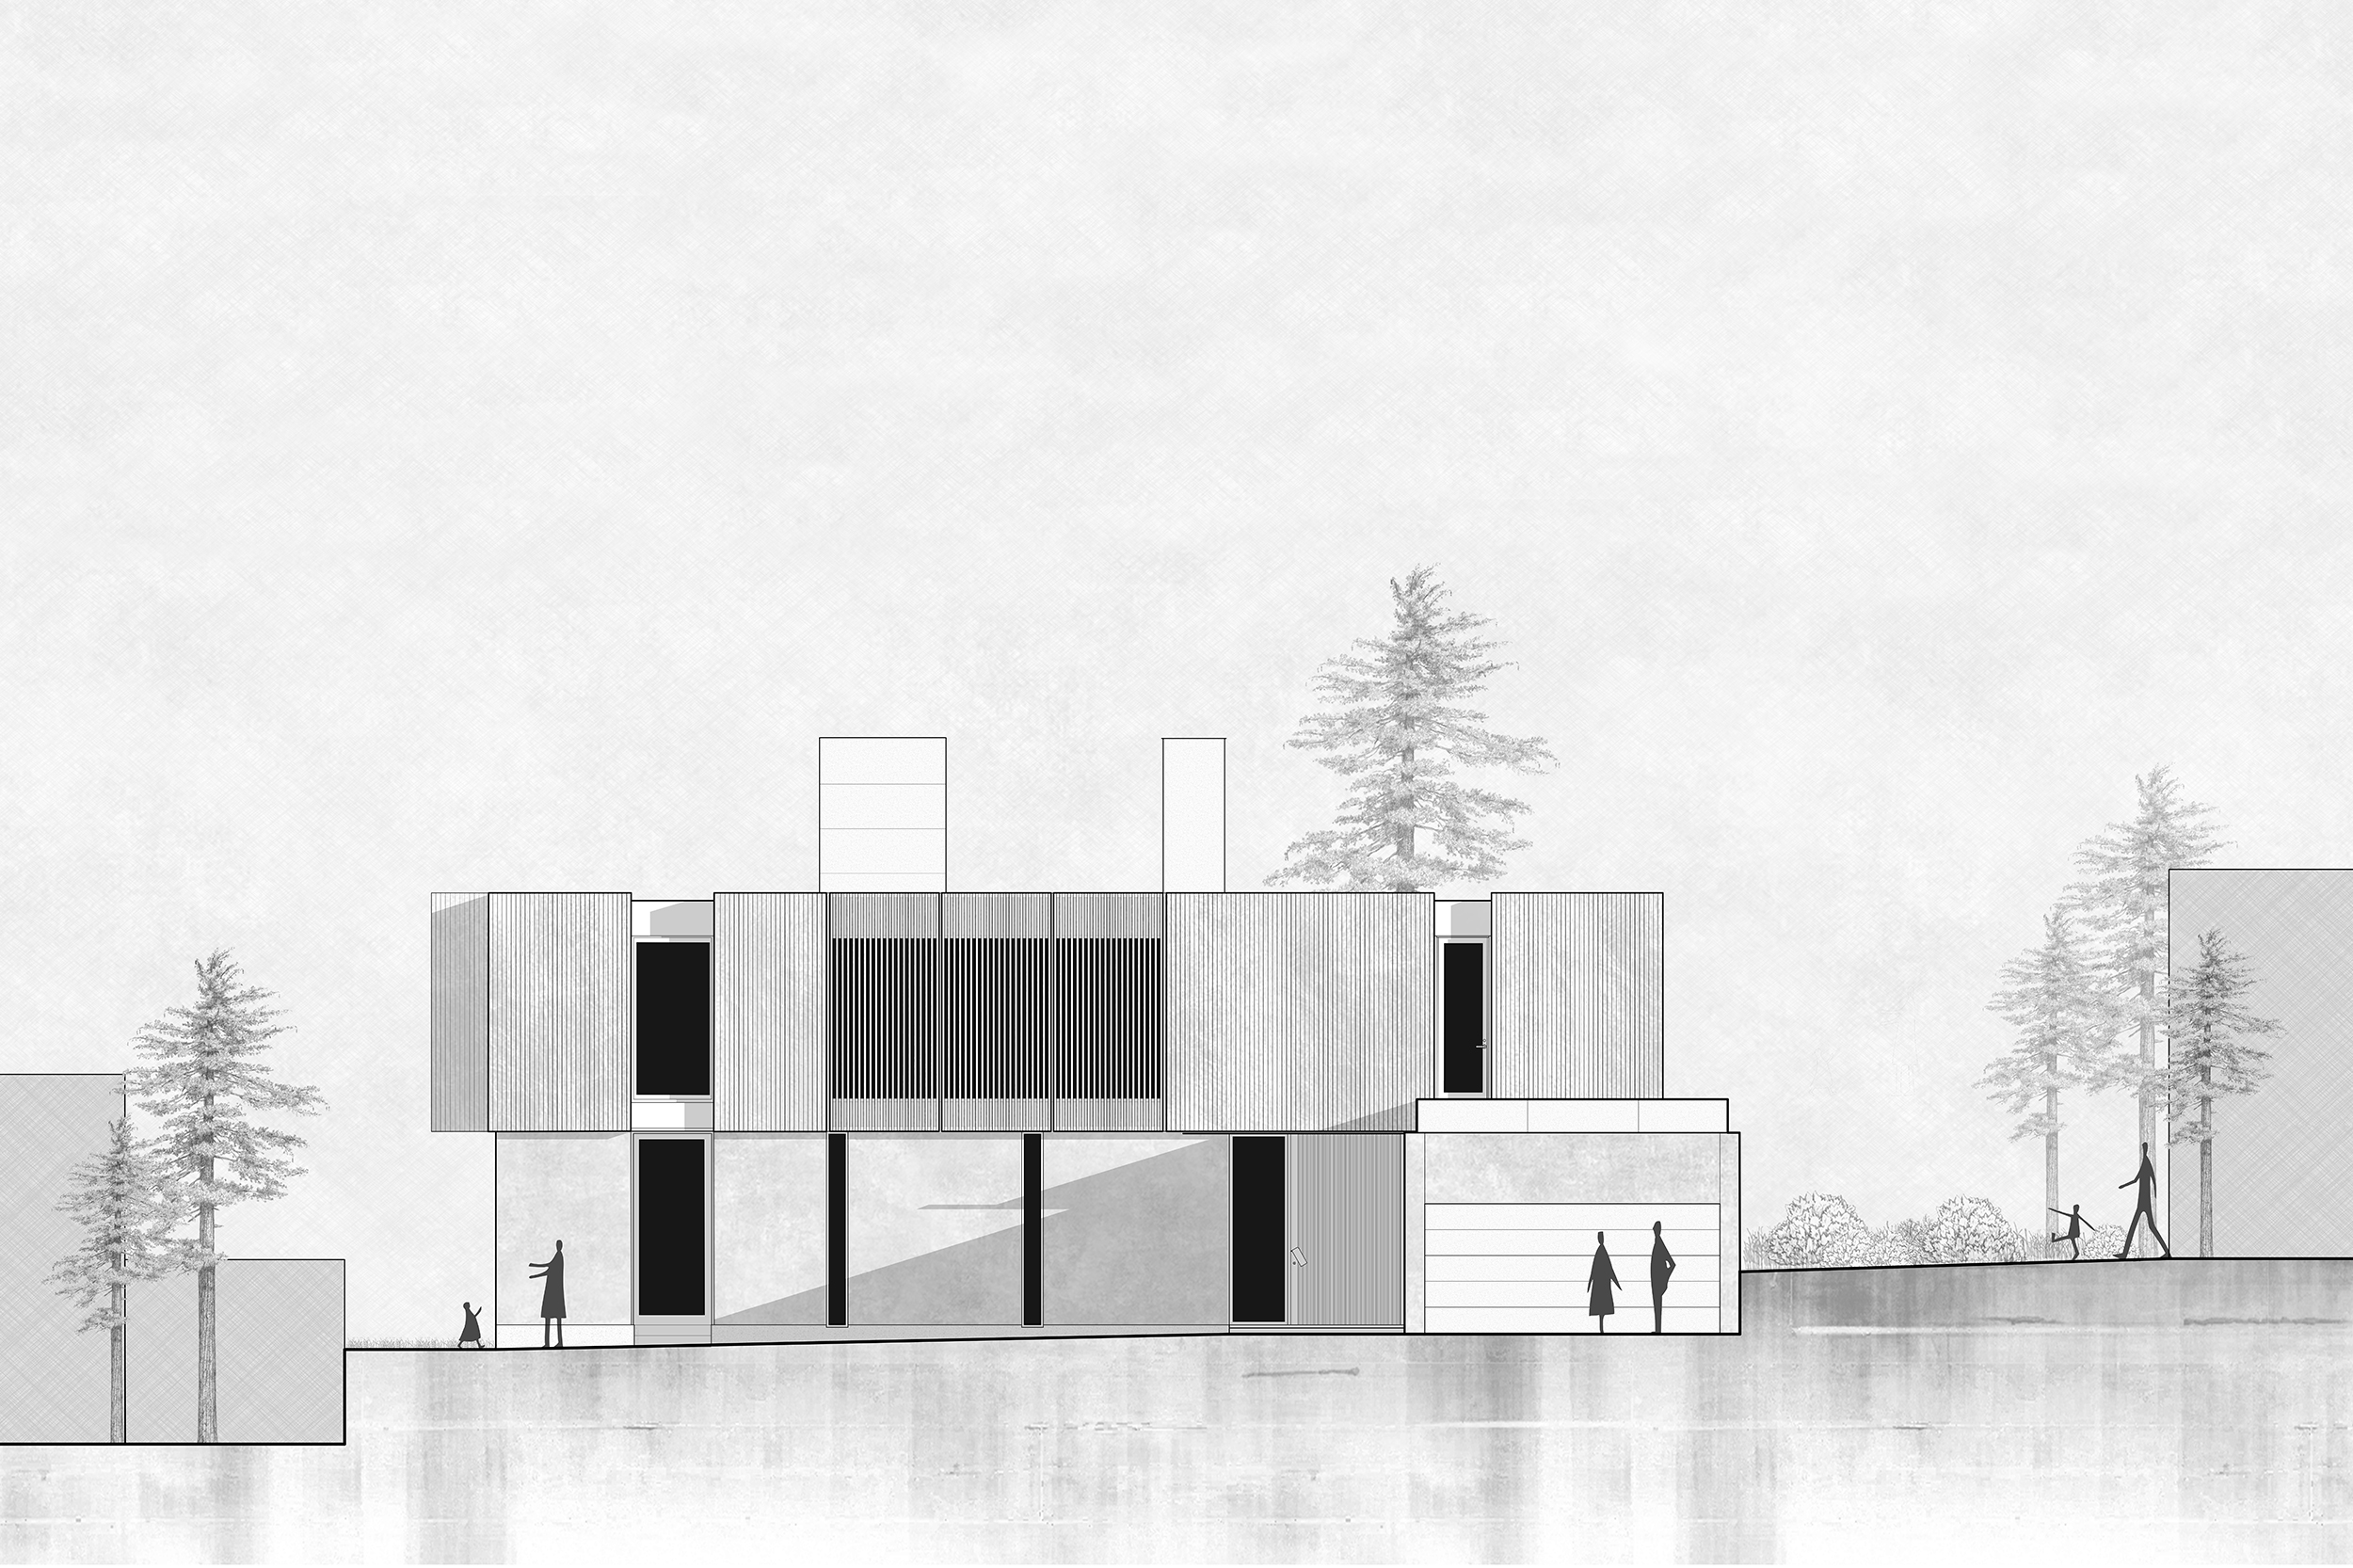 goCstudio_Sound House_North Elevation.jpg